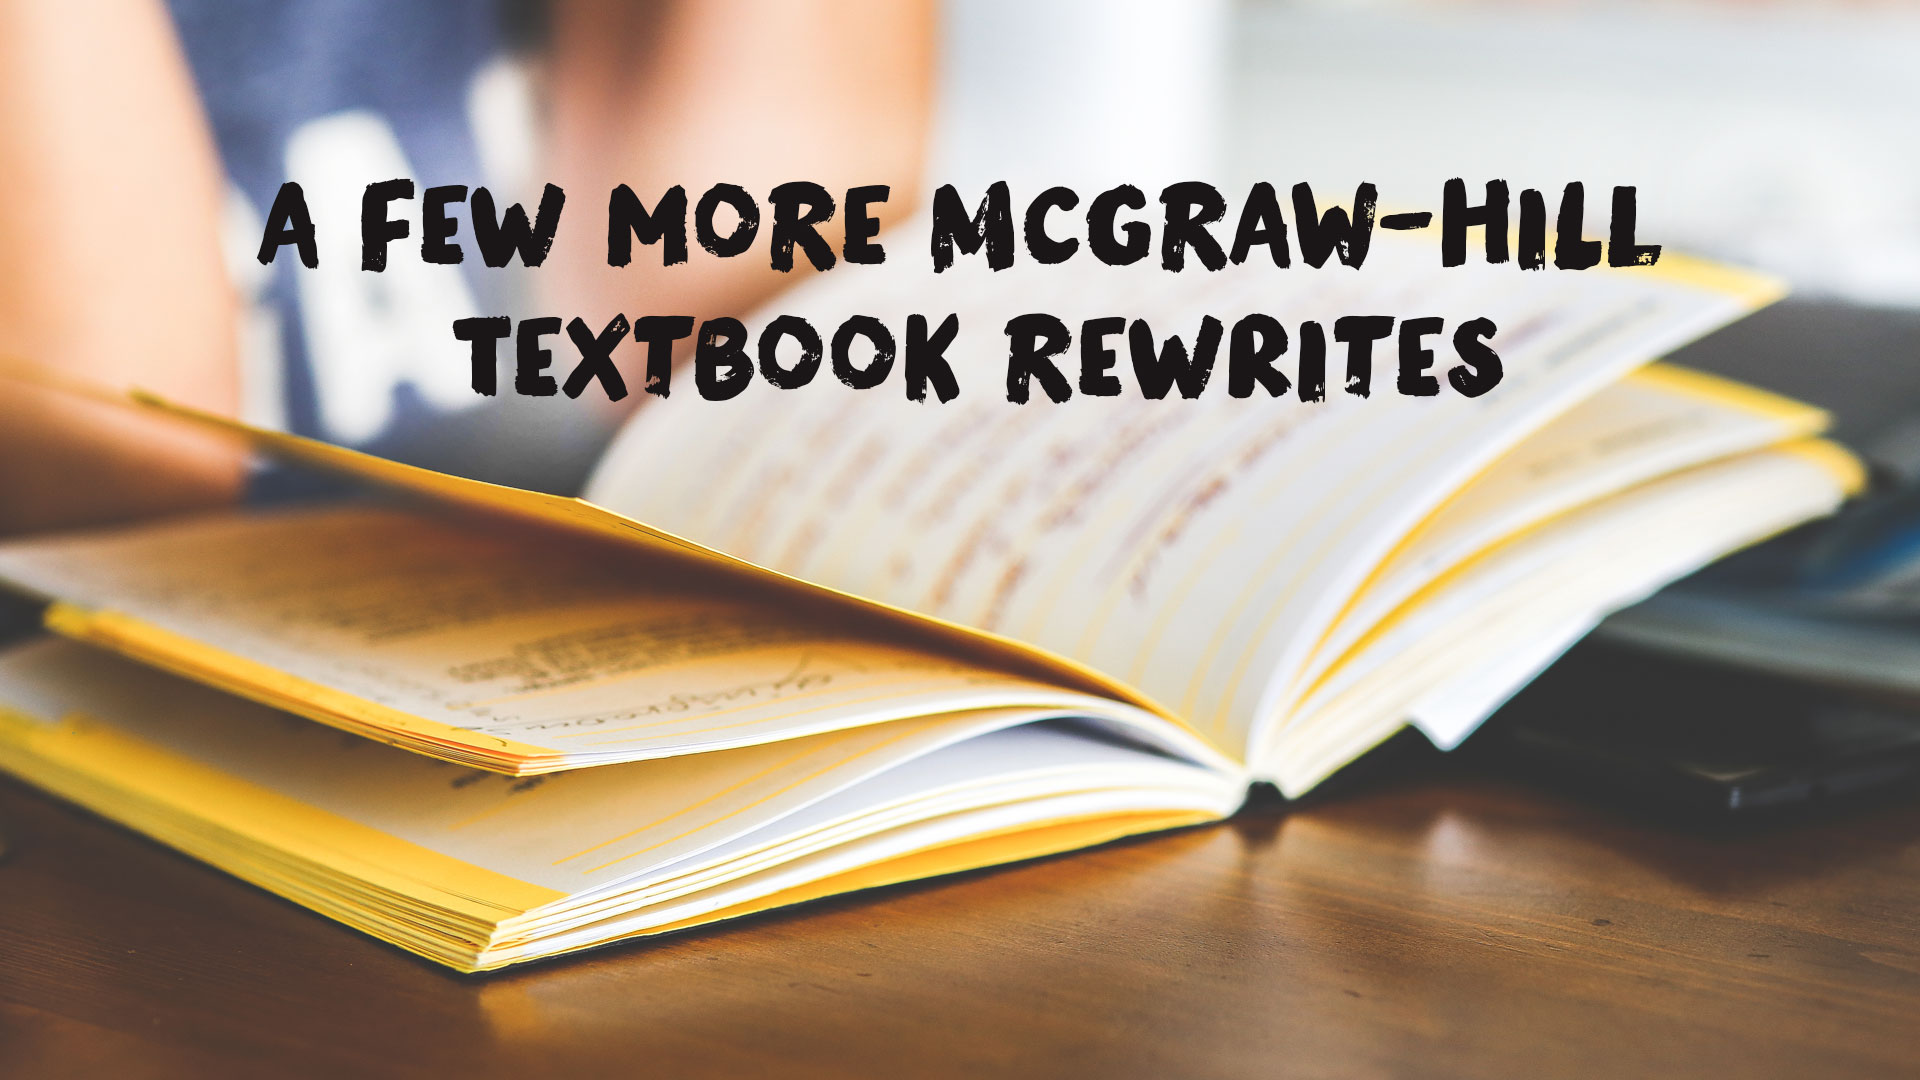 A Few More Textbook Rewrites McGraw-Hill Should Get Working On